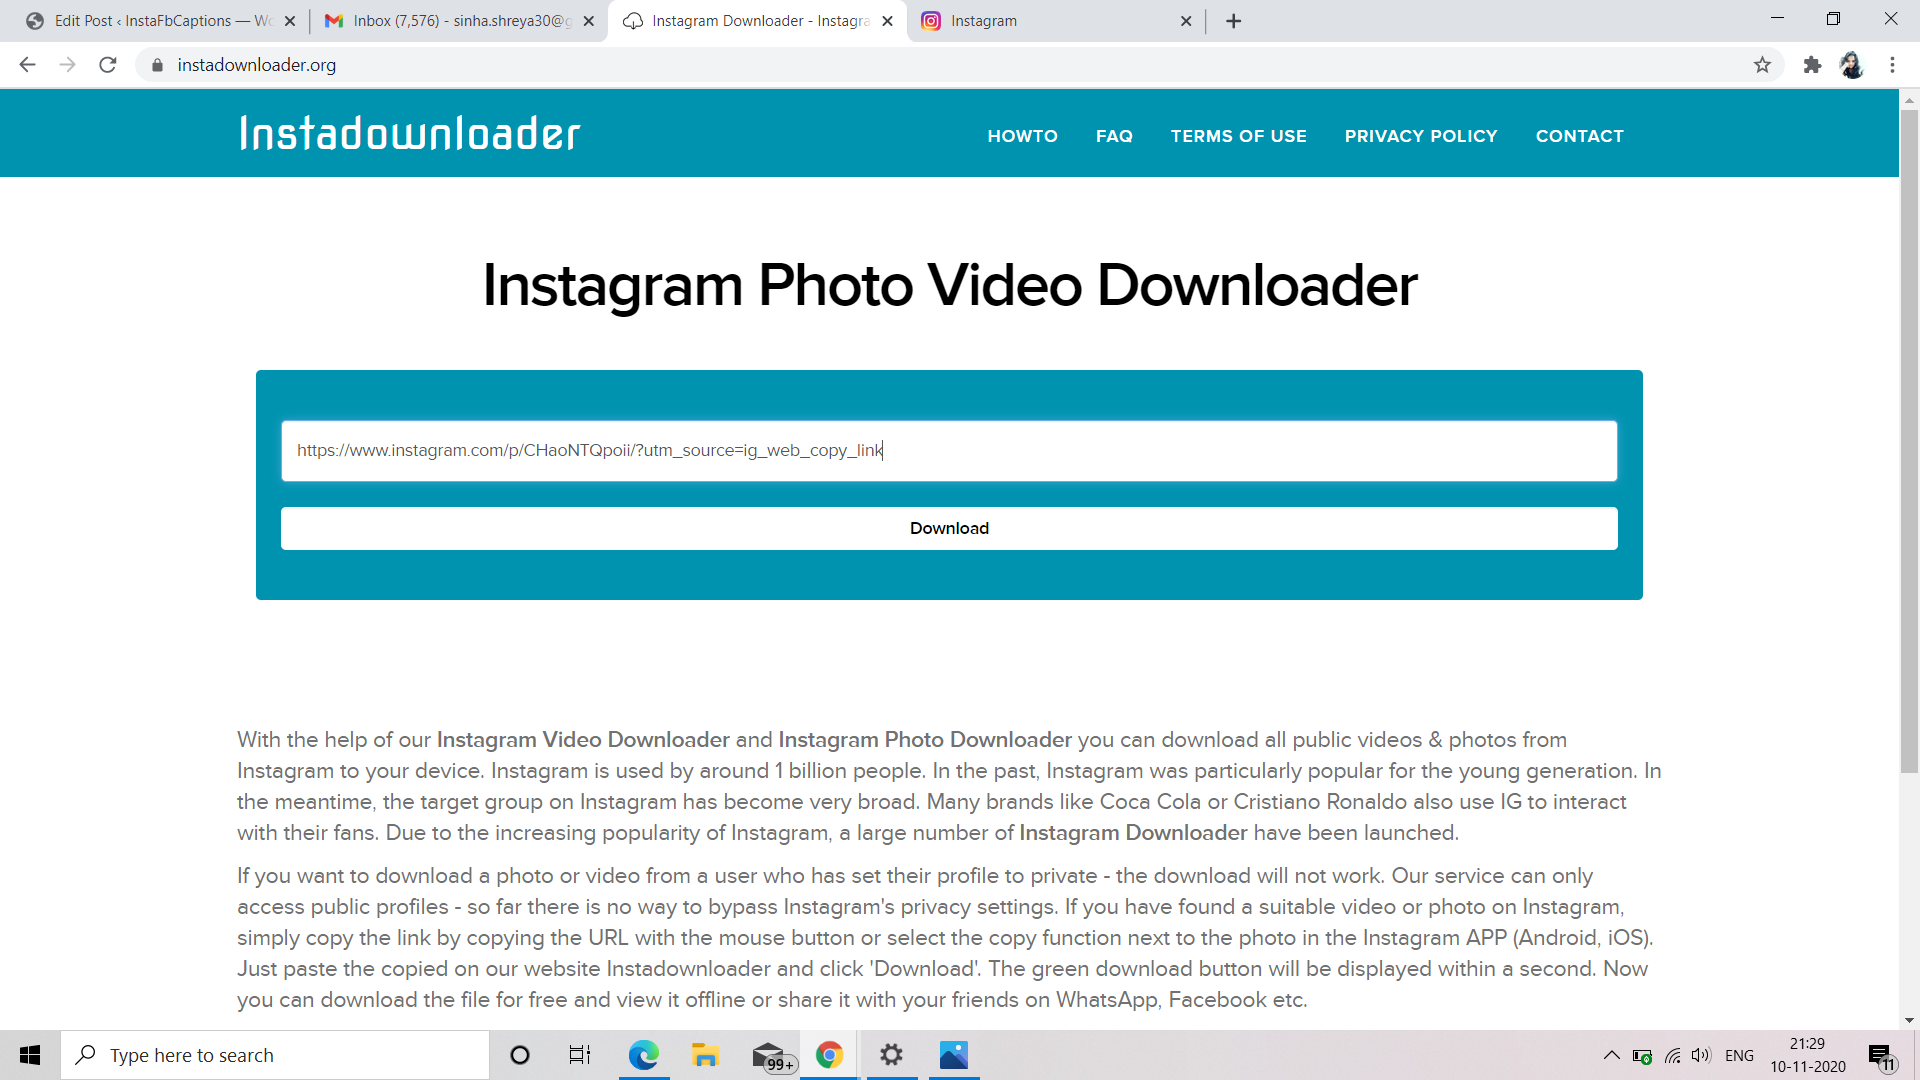 Download Instagram Videos From Instagram To Pc Through Video Downloader 2  - Download instagram videos from Instagram to PC through Video downloader 2 - Download Instagram Videos (14 Methods) – PC, Android, iPhone, Apps